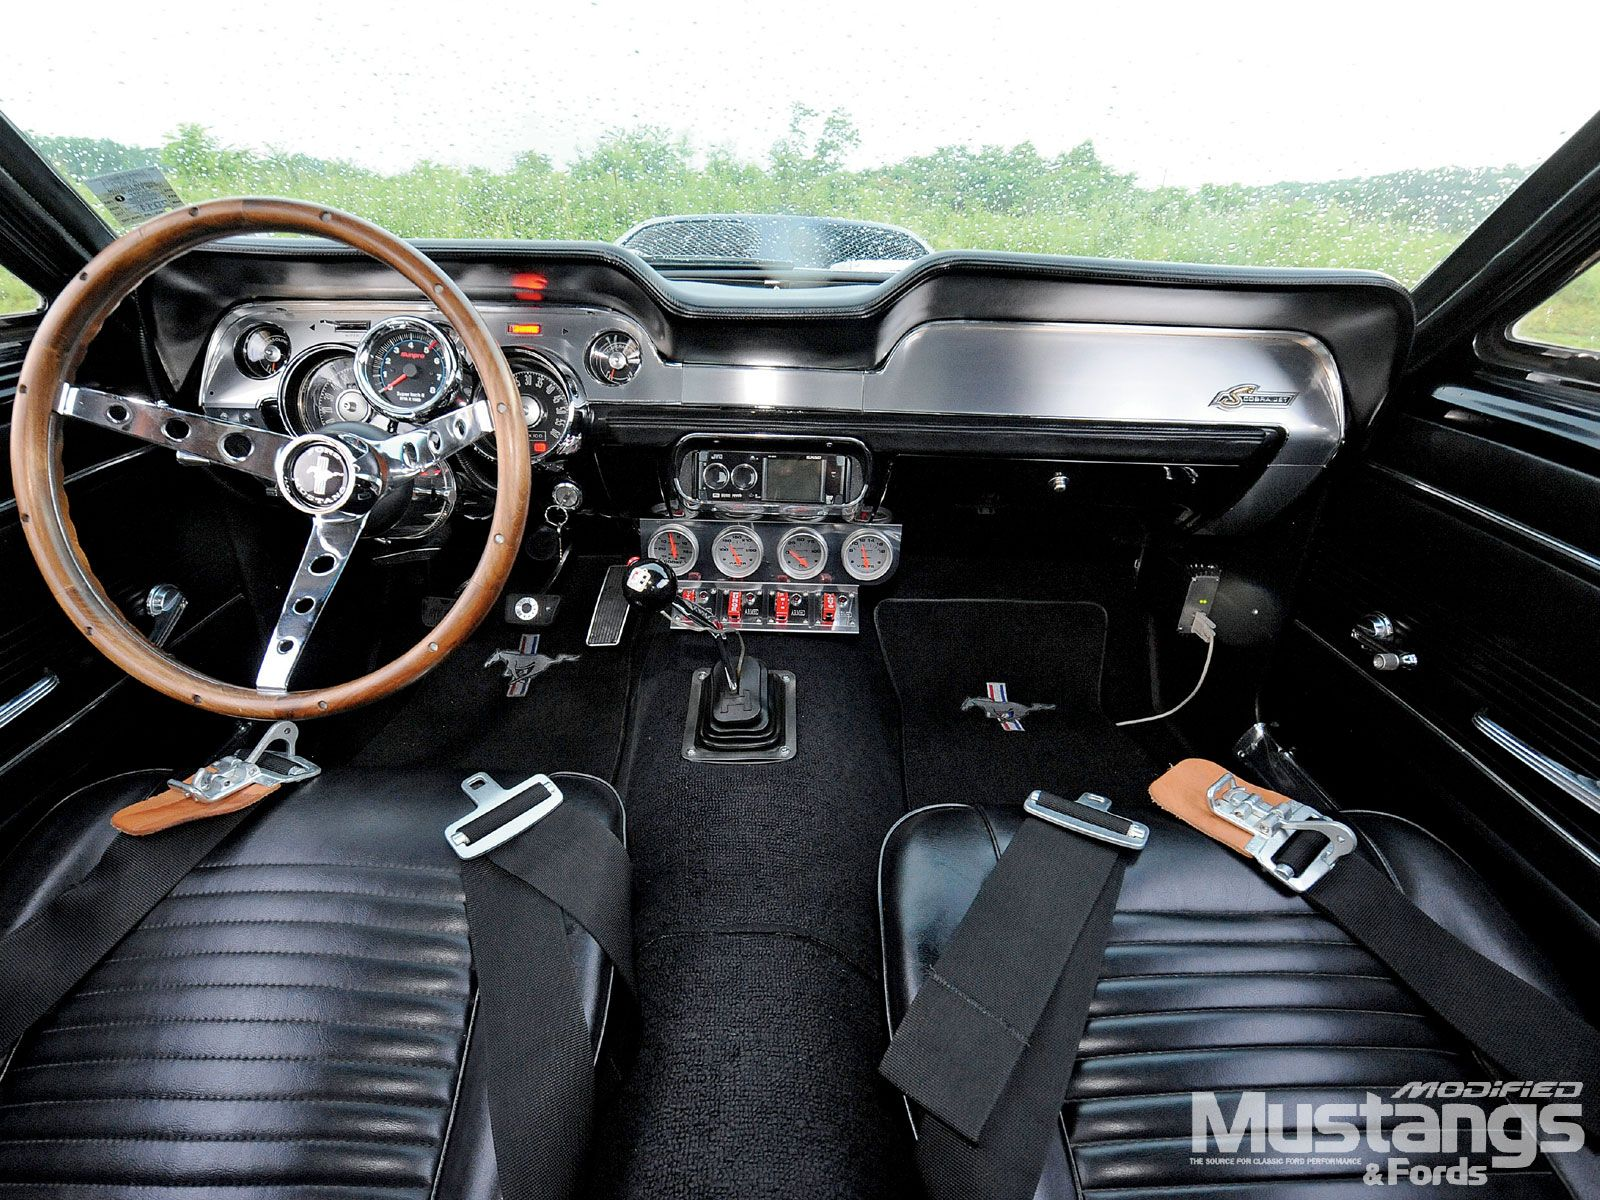 1967 ford mustang interior i cannot stand the standard front seat console and needless gadgetry - 1967 Ford Mustang Convertible Interior